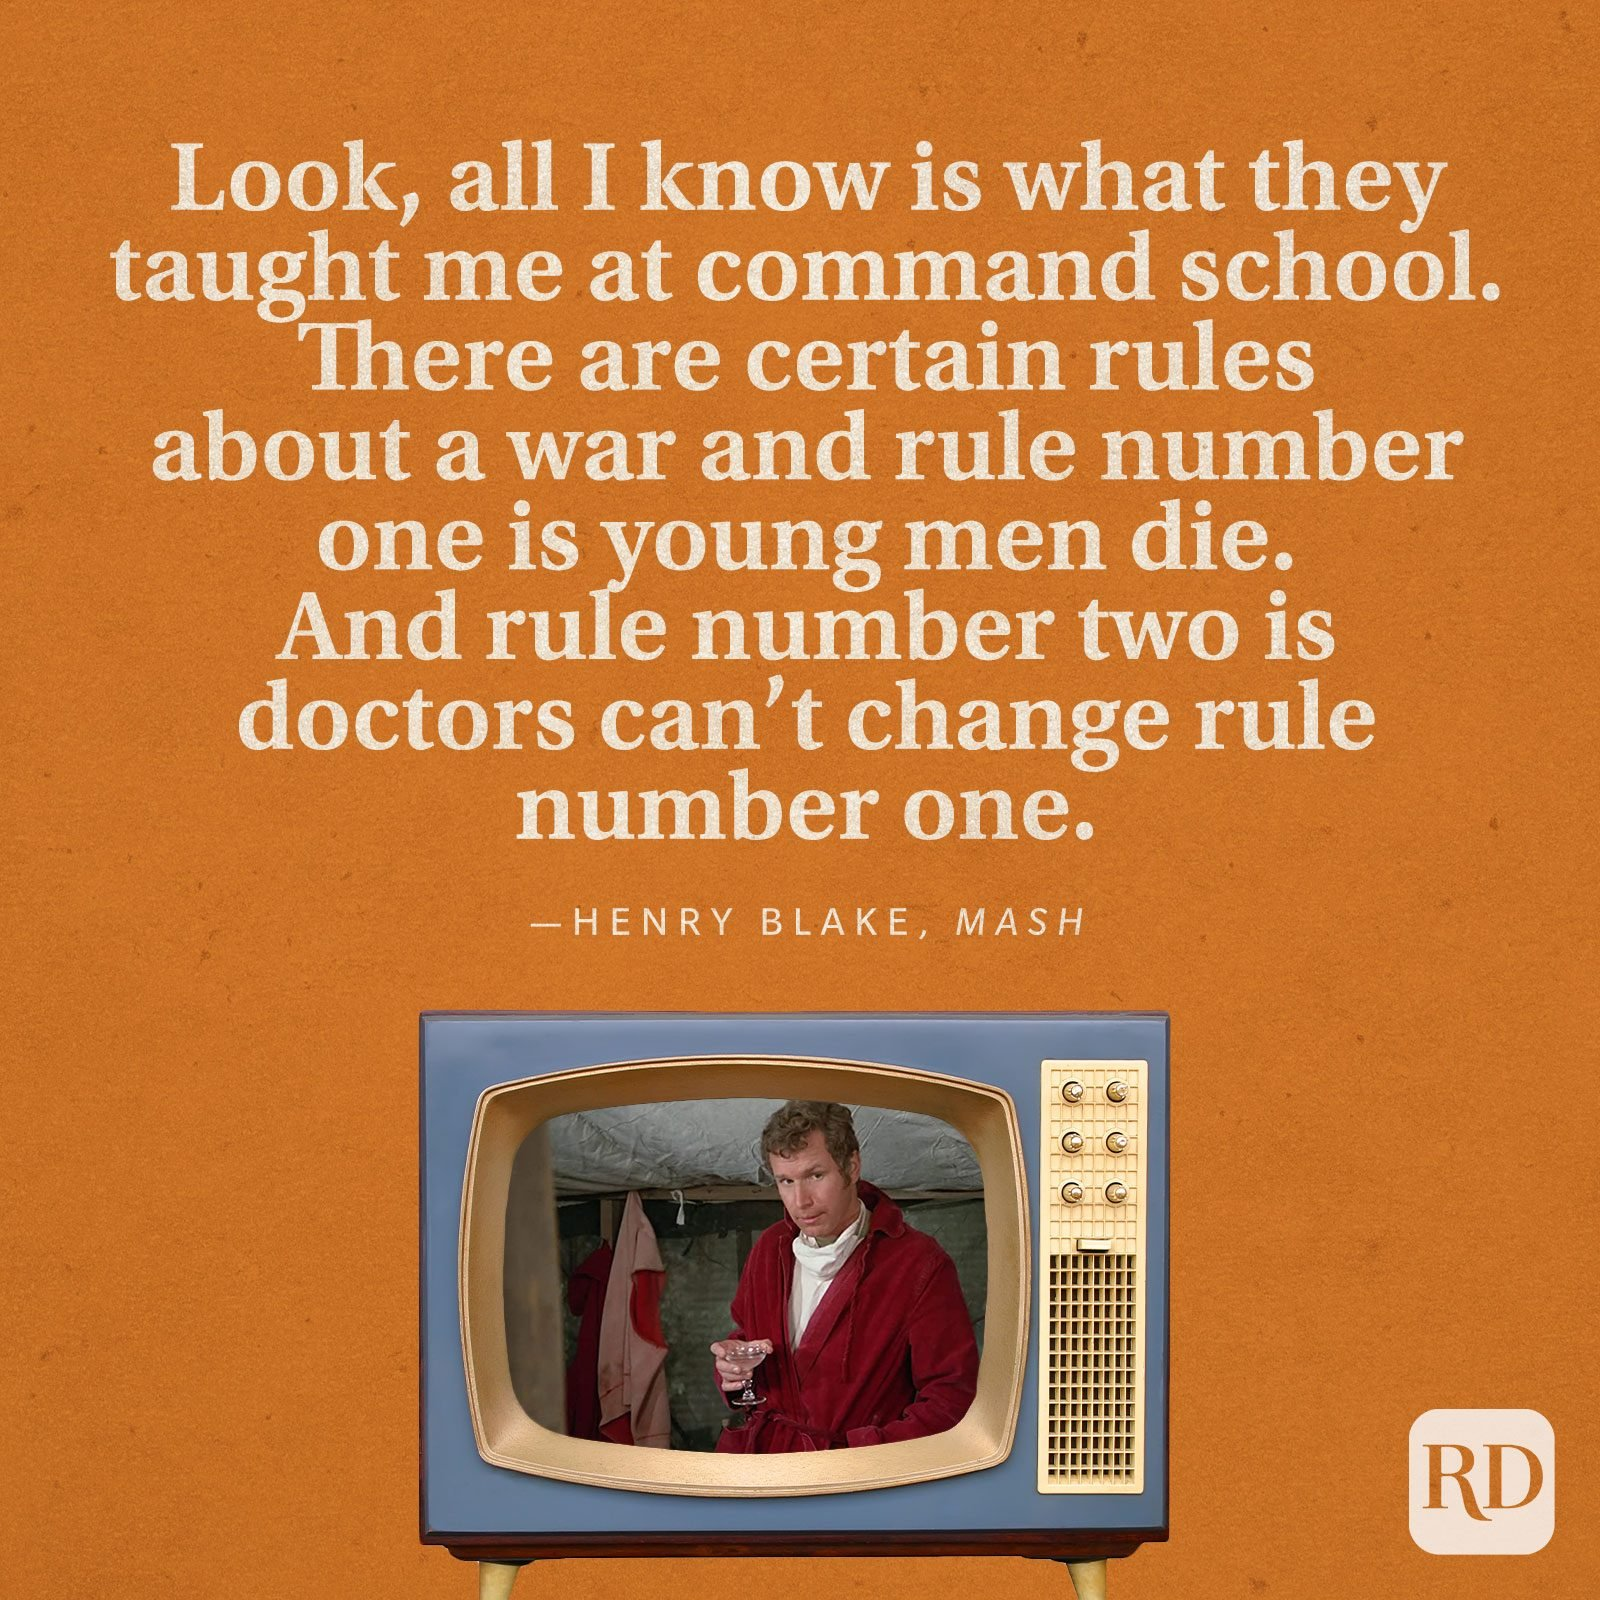 """""""Look, all I know is what they taught me at command school. There are certain rules about a war and rule number one is young men die. And rule number two is doctors can't change rule number one."""" —Henry Blake in MASH."""